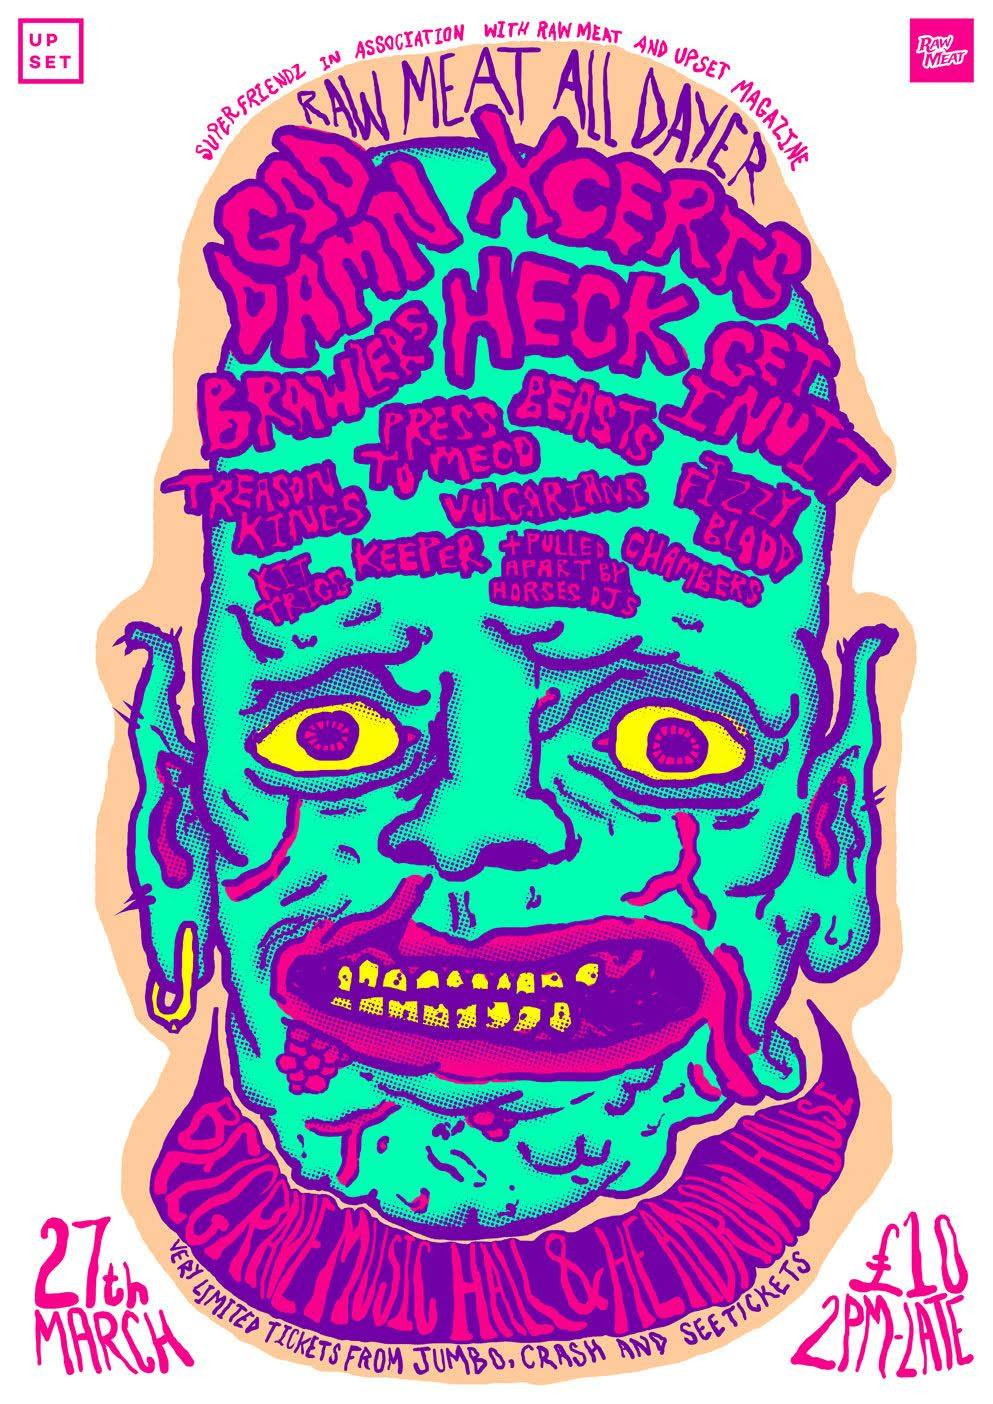 Raw Meat All Dayer - 27th March 2016 - God Damn, Xcerts, Brawlers, Heck, Get Inuit